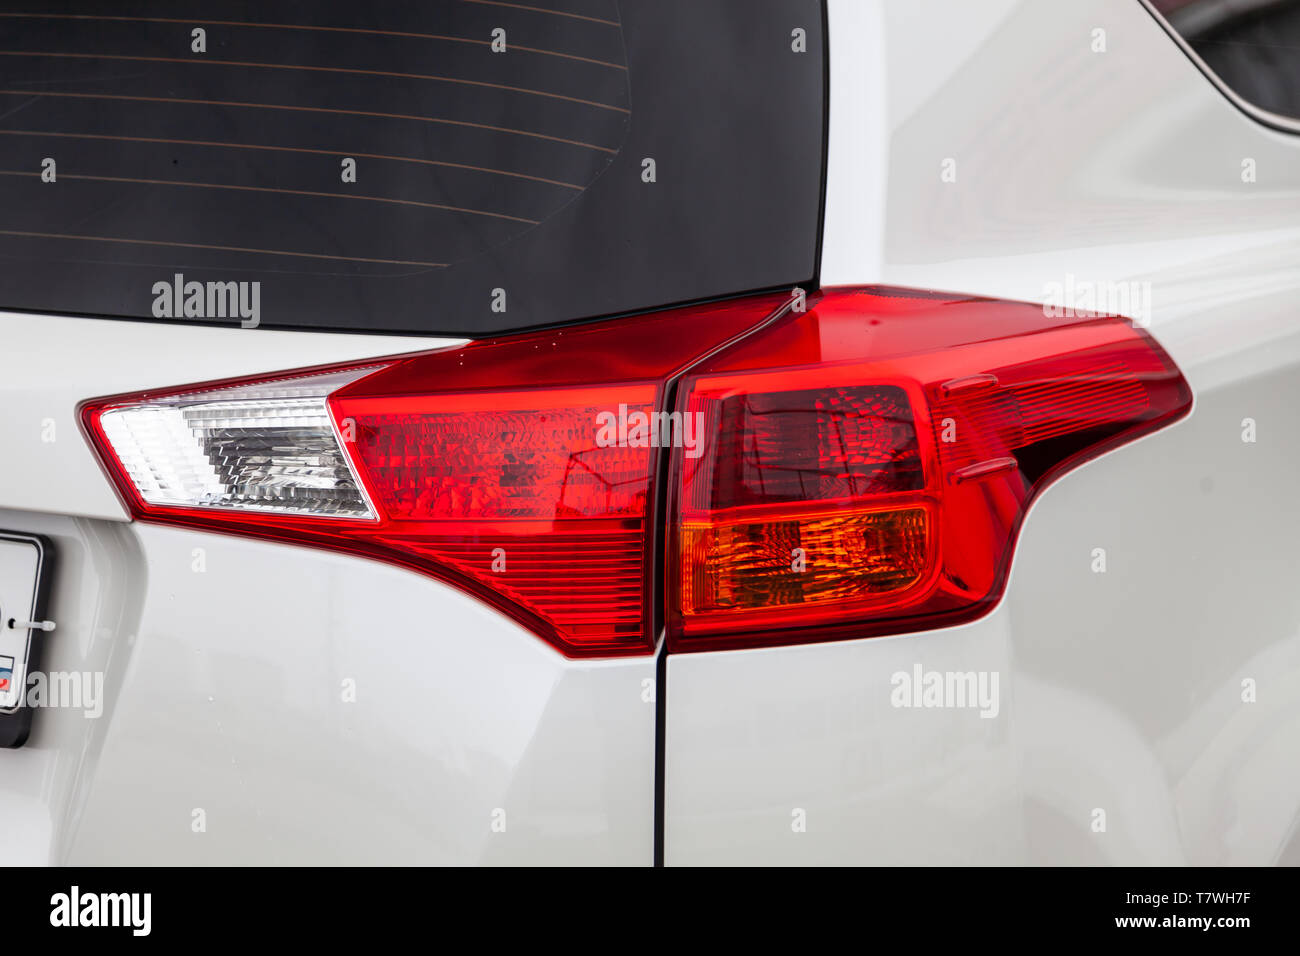 Close-up on the rear brake light of red color on a white car in the back of a suv after cleaning, polishing and detailing in the vehicle repair worksh - Stock Image